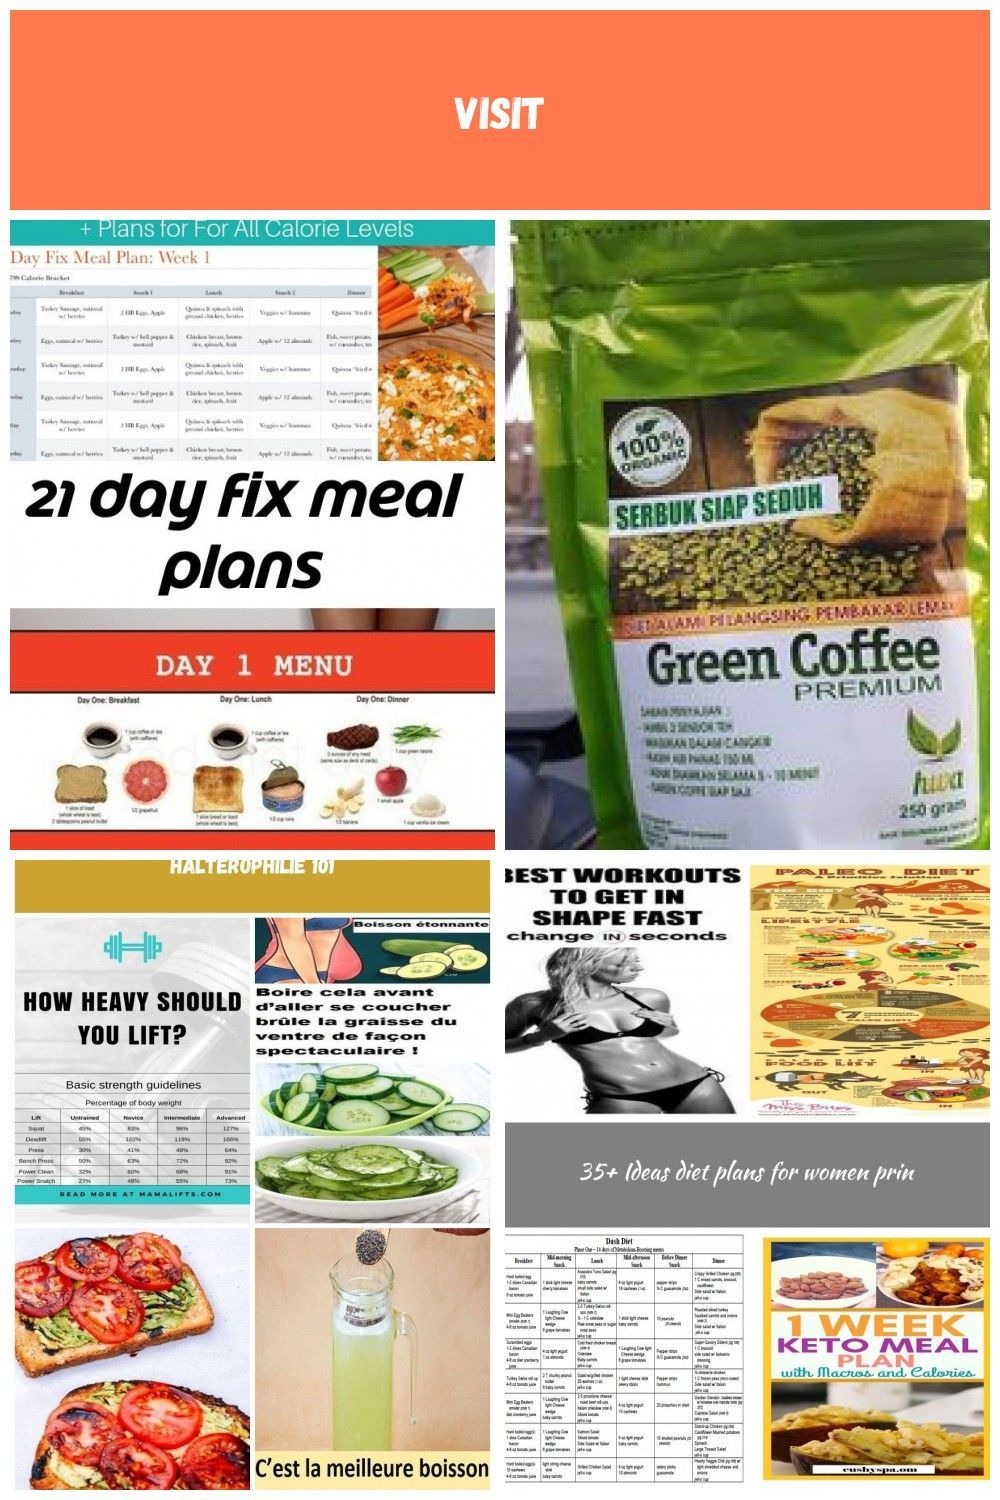 A TON of 21 Day Fix meal plans for all of the calorie brackets: 1200, 1500, 1800, and 2100. Printabl...